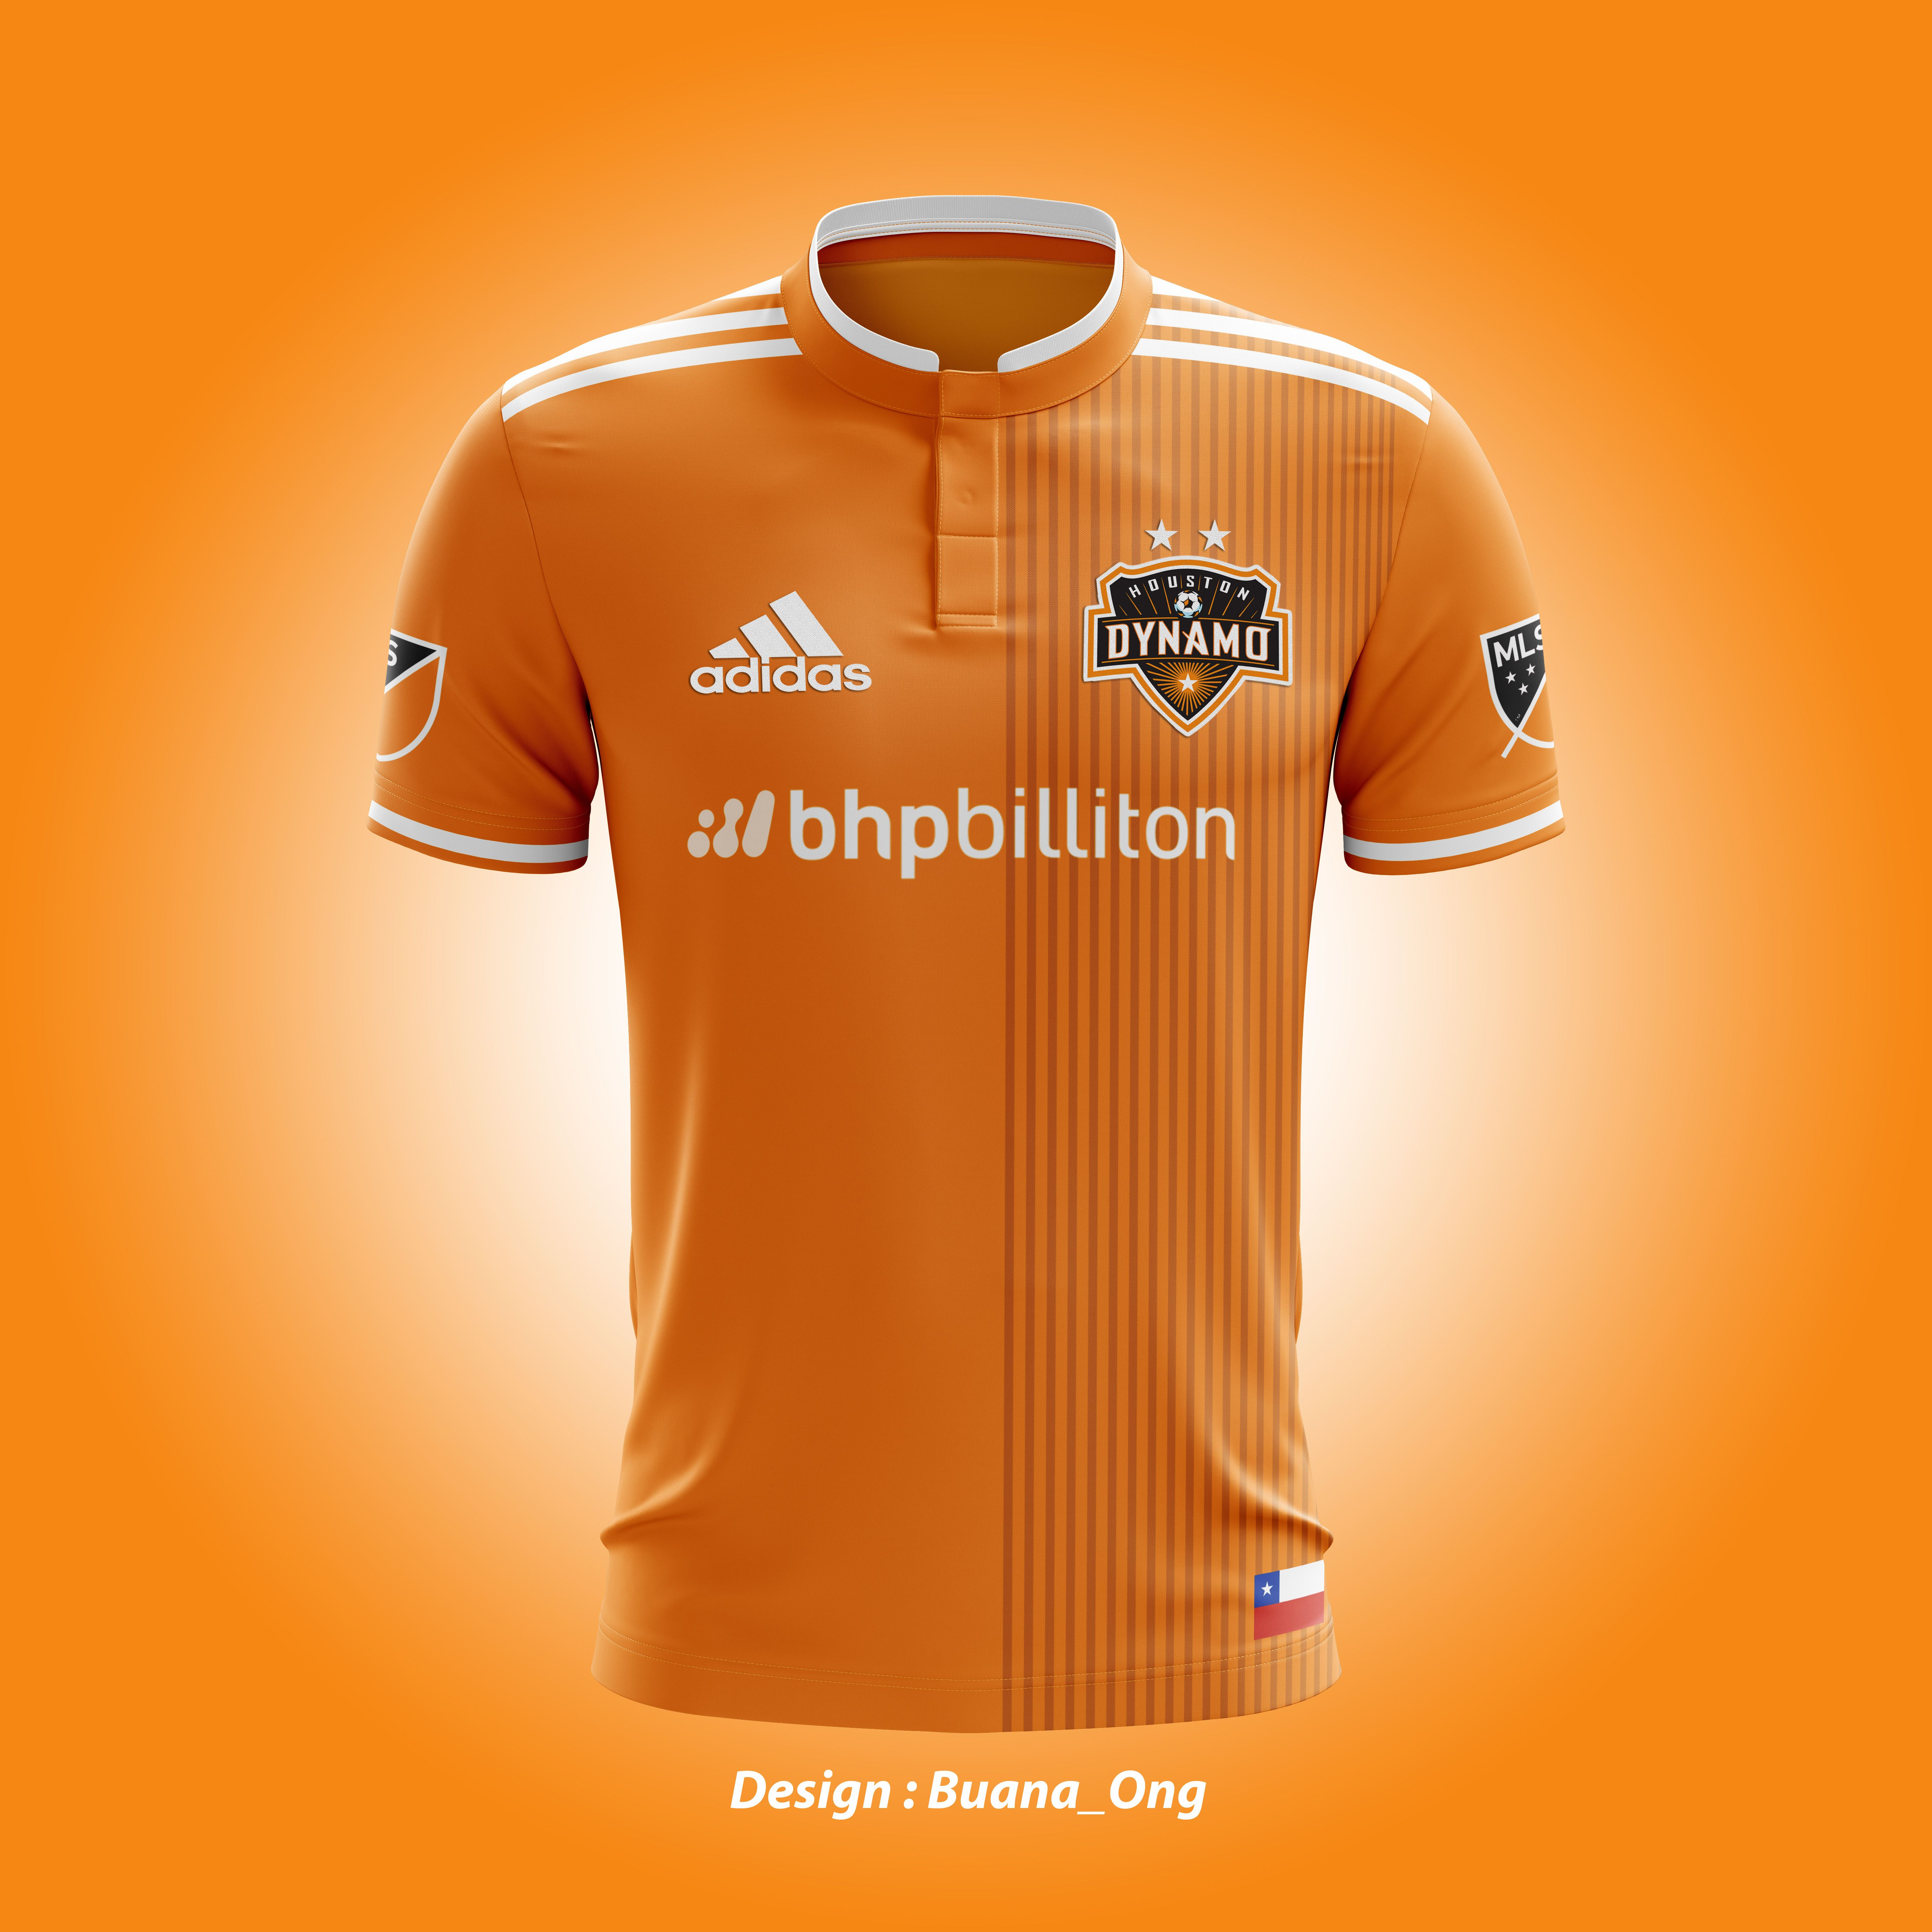 huge selection of 6baa5 6859c Pin by Buana Ong on MLS   Concept home, Houston dynamo, Mens ...